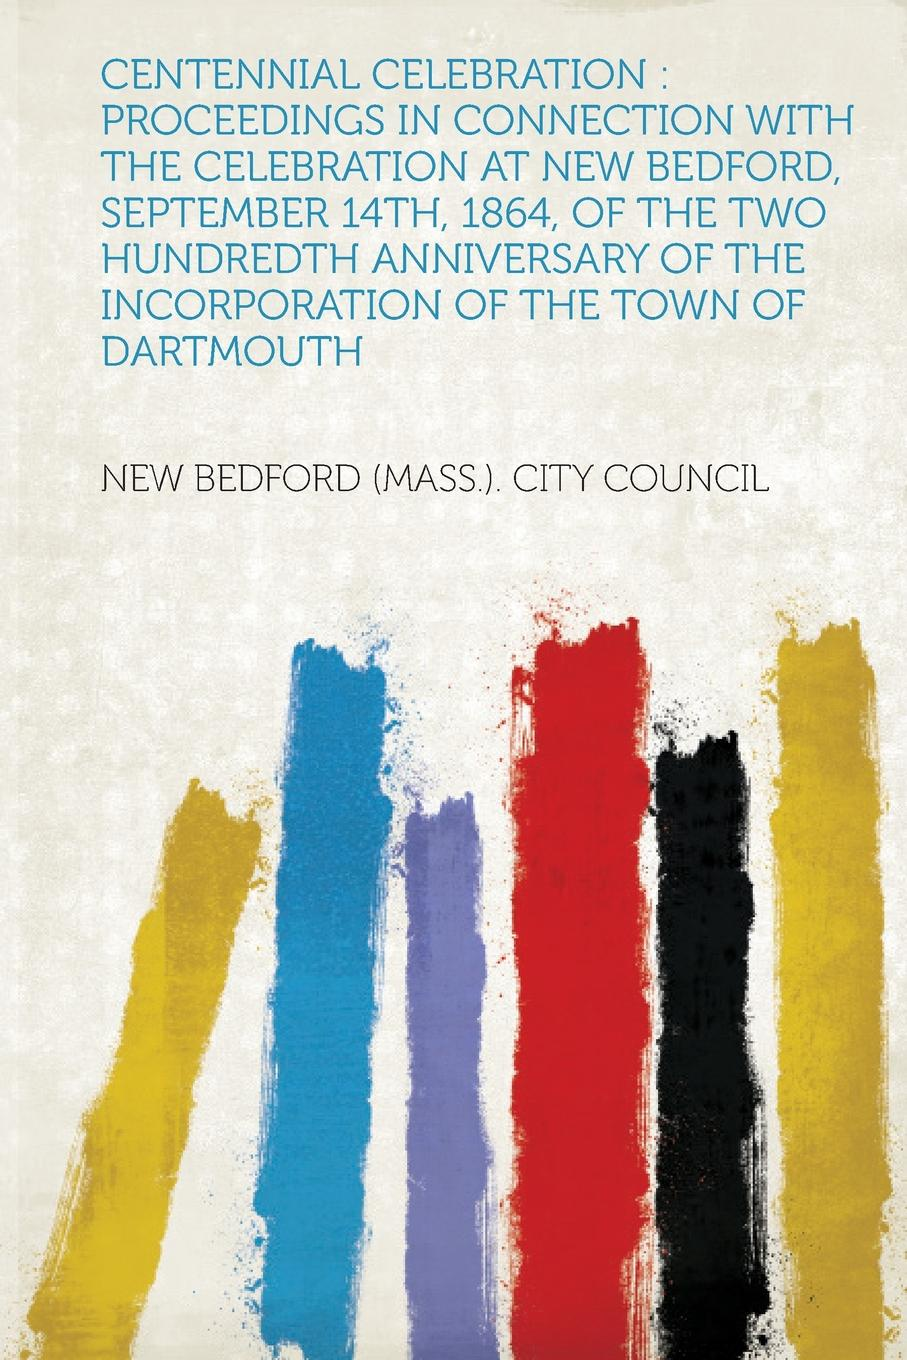 Centennial Celebration. Proceedings in Connection with the Celebration at New Bedford, September 14th, 1864, of Two Hundredth Anniversary